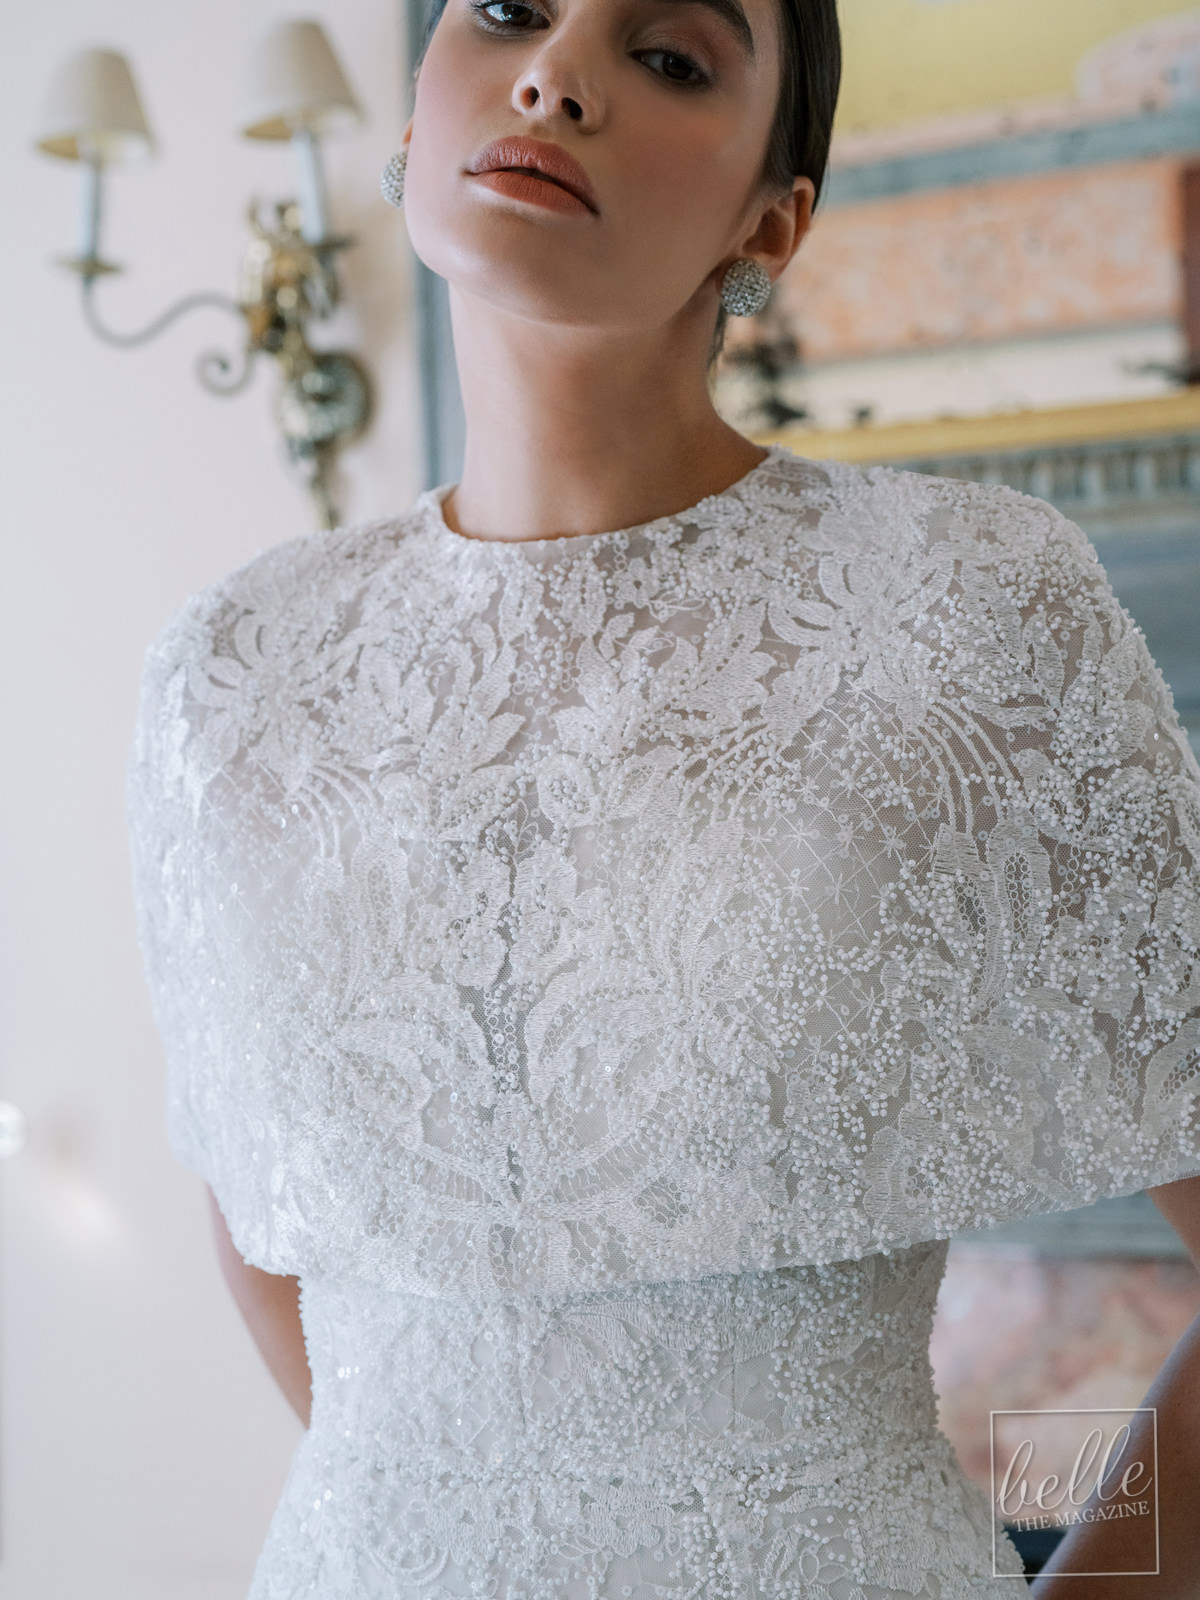 Wedding dress trends 2021 - Capes- Anne Barge